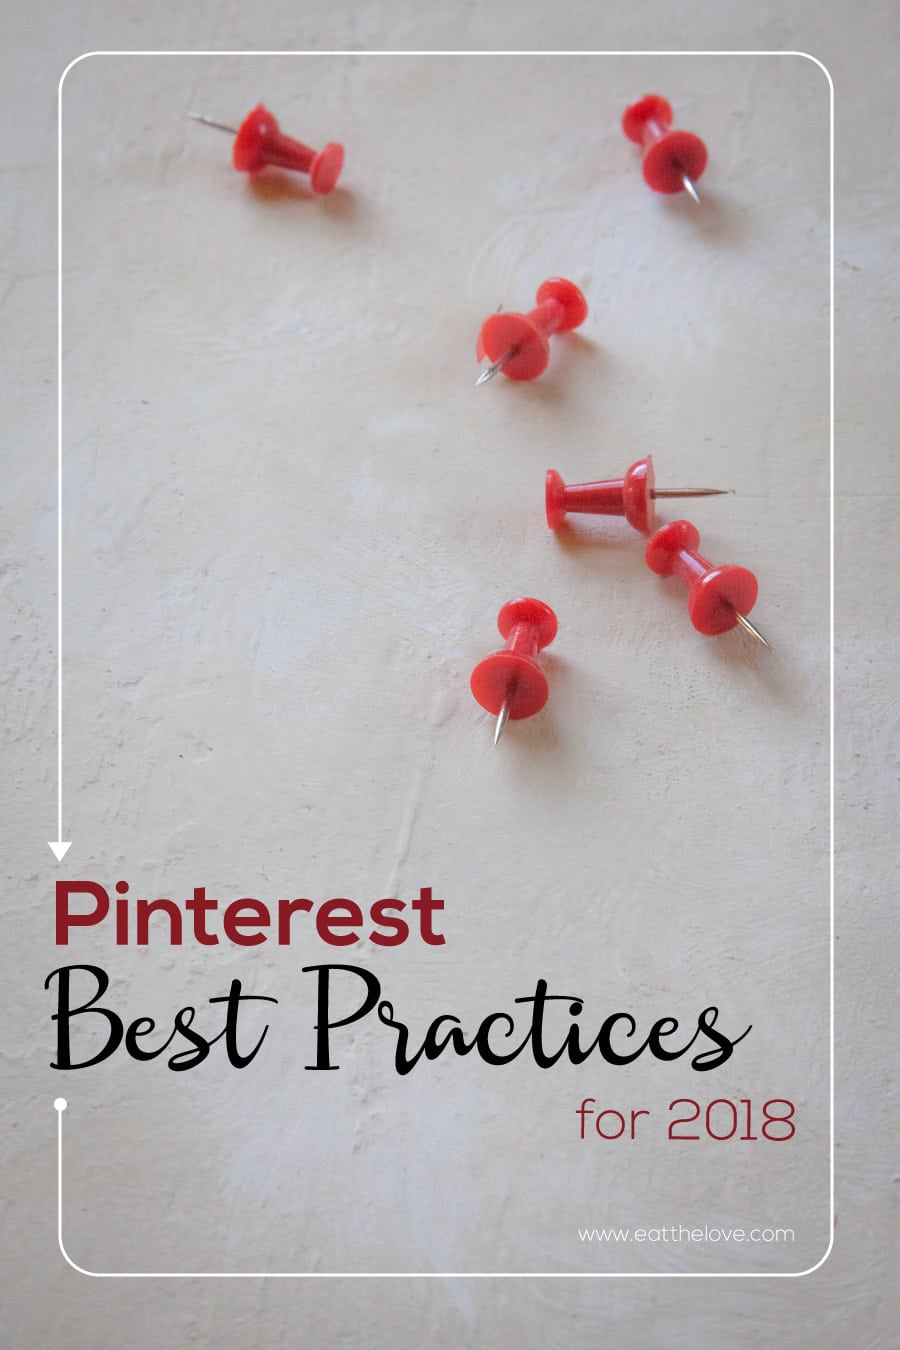 Looking for Pinterest Best Practices for 2018? Here it is! Check out how to grow and get the best reach on Pinterest. #howto #bestpractices #pinterest